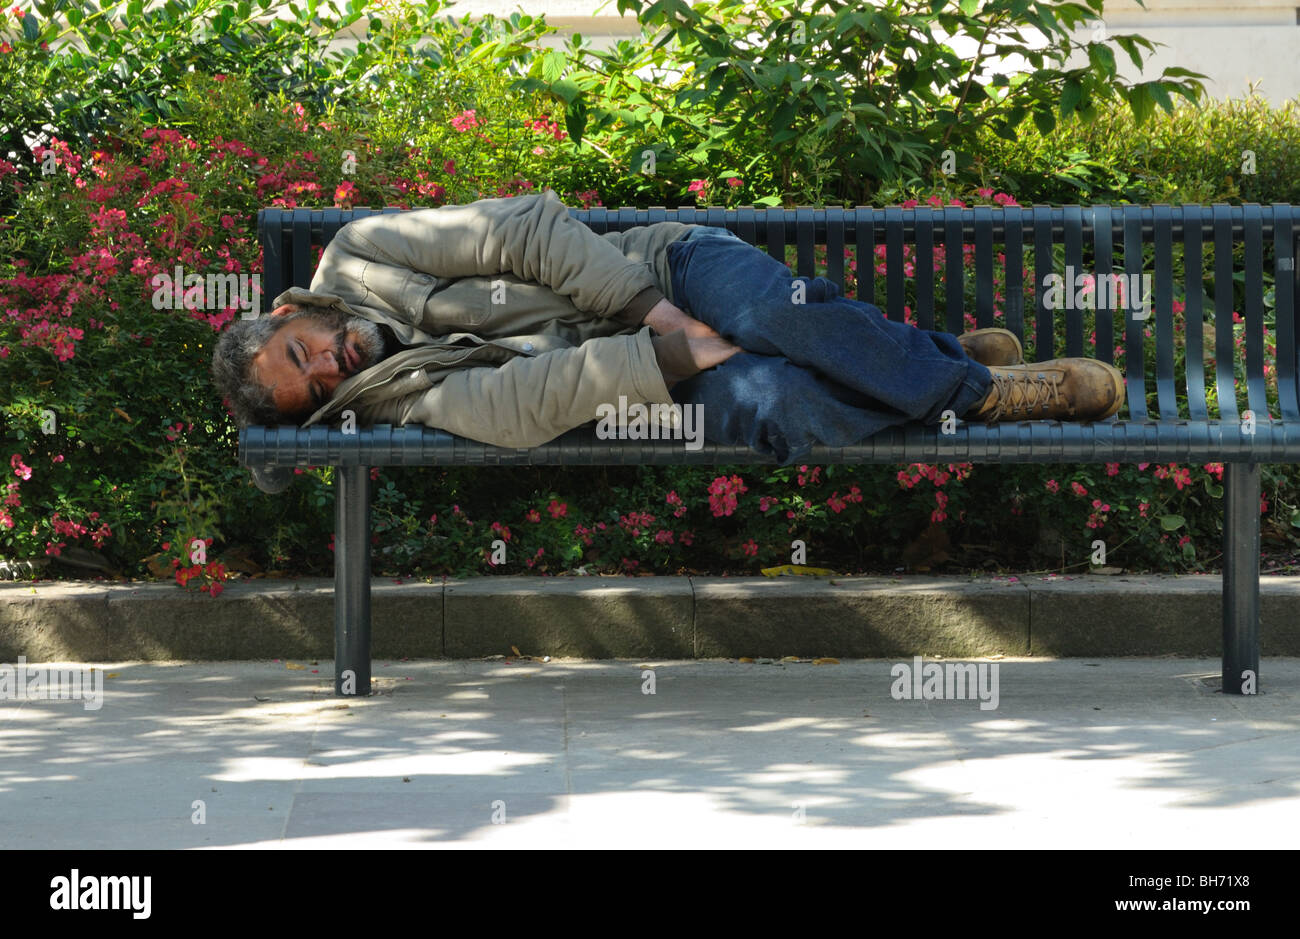 A homeless man sleeping on a public bench in a city park - Stock Image